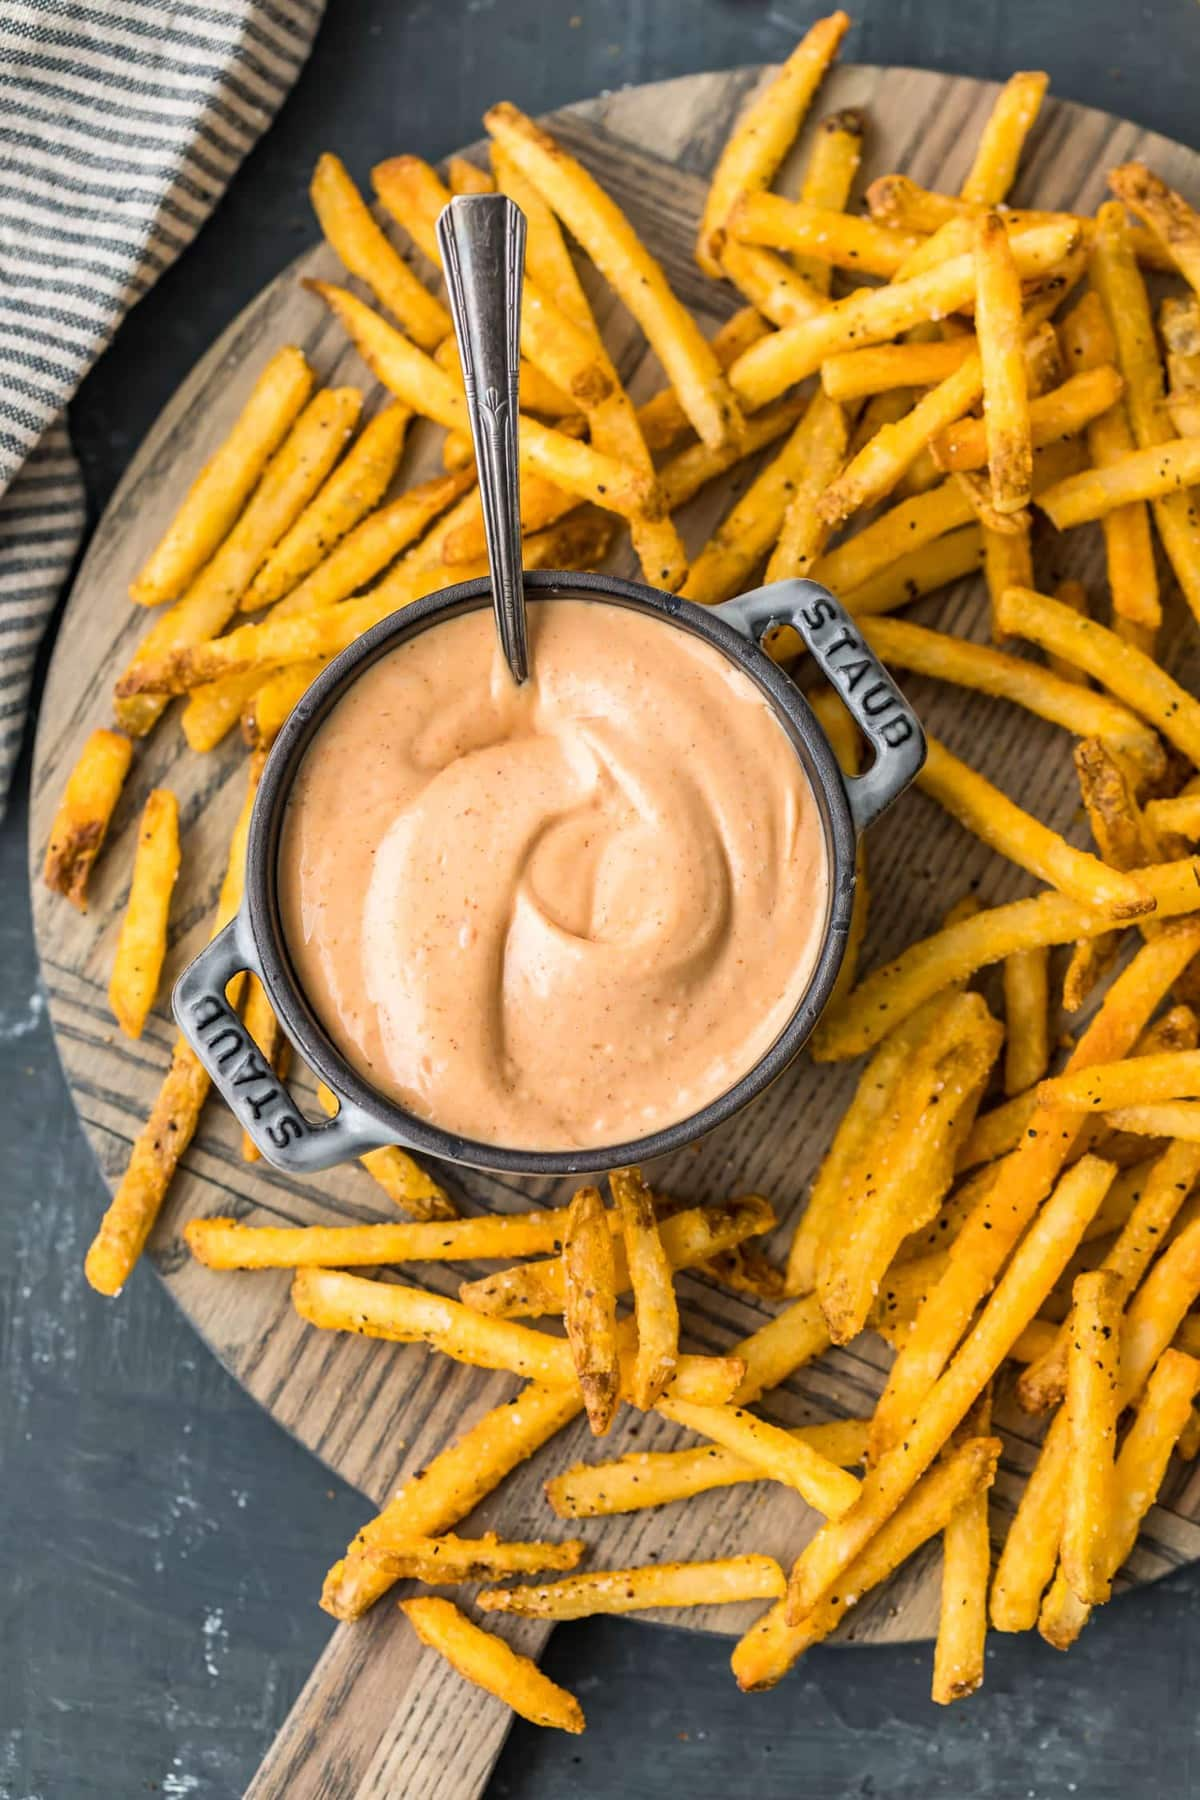 Fry sauce in a small metal pot